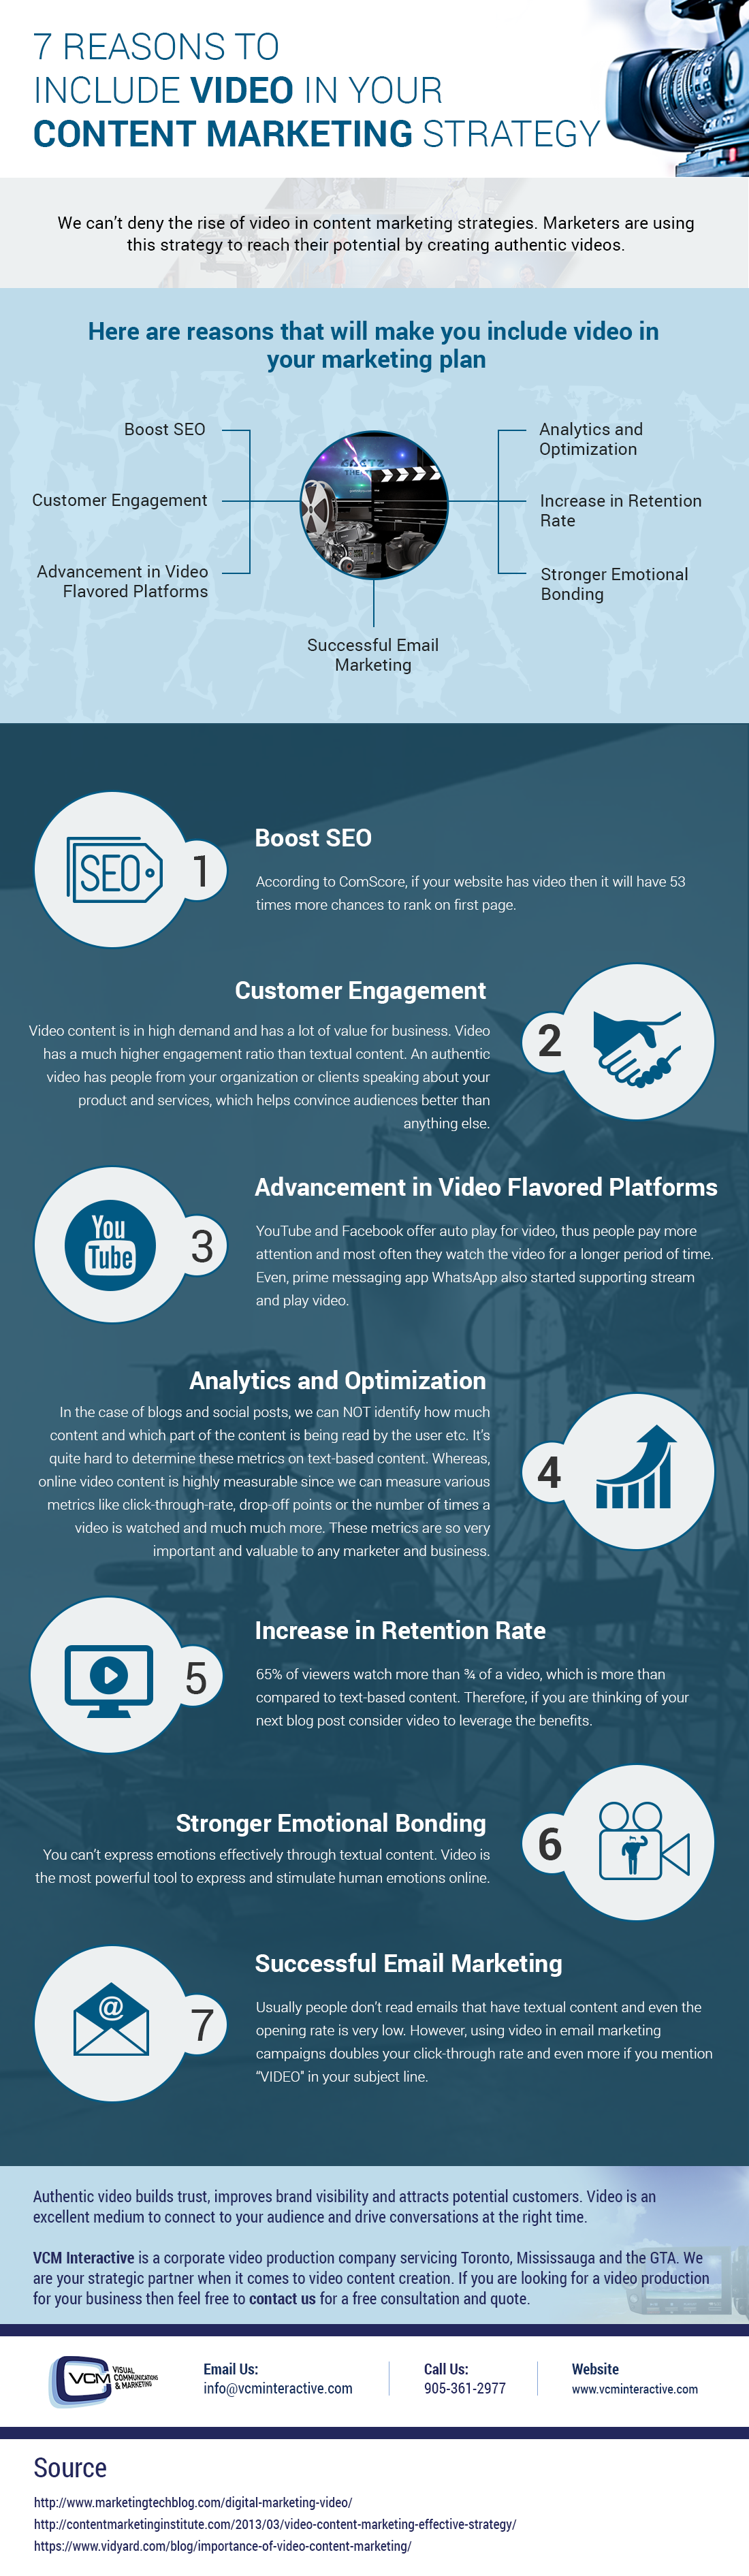 7 Reasons to Include Video in Your Content Marketing Strategy